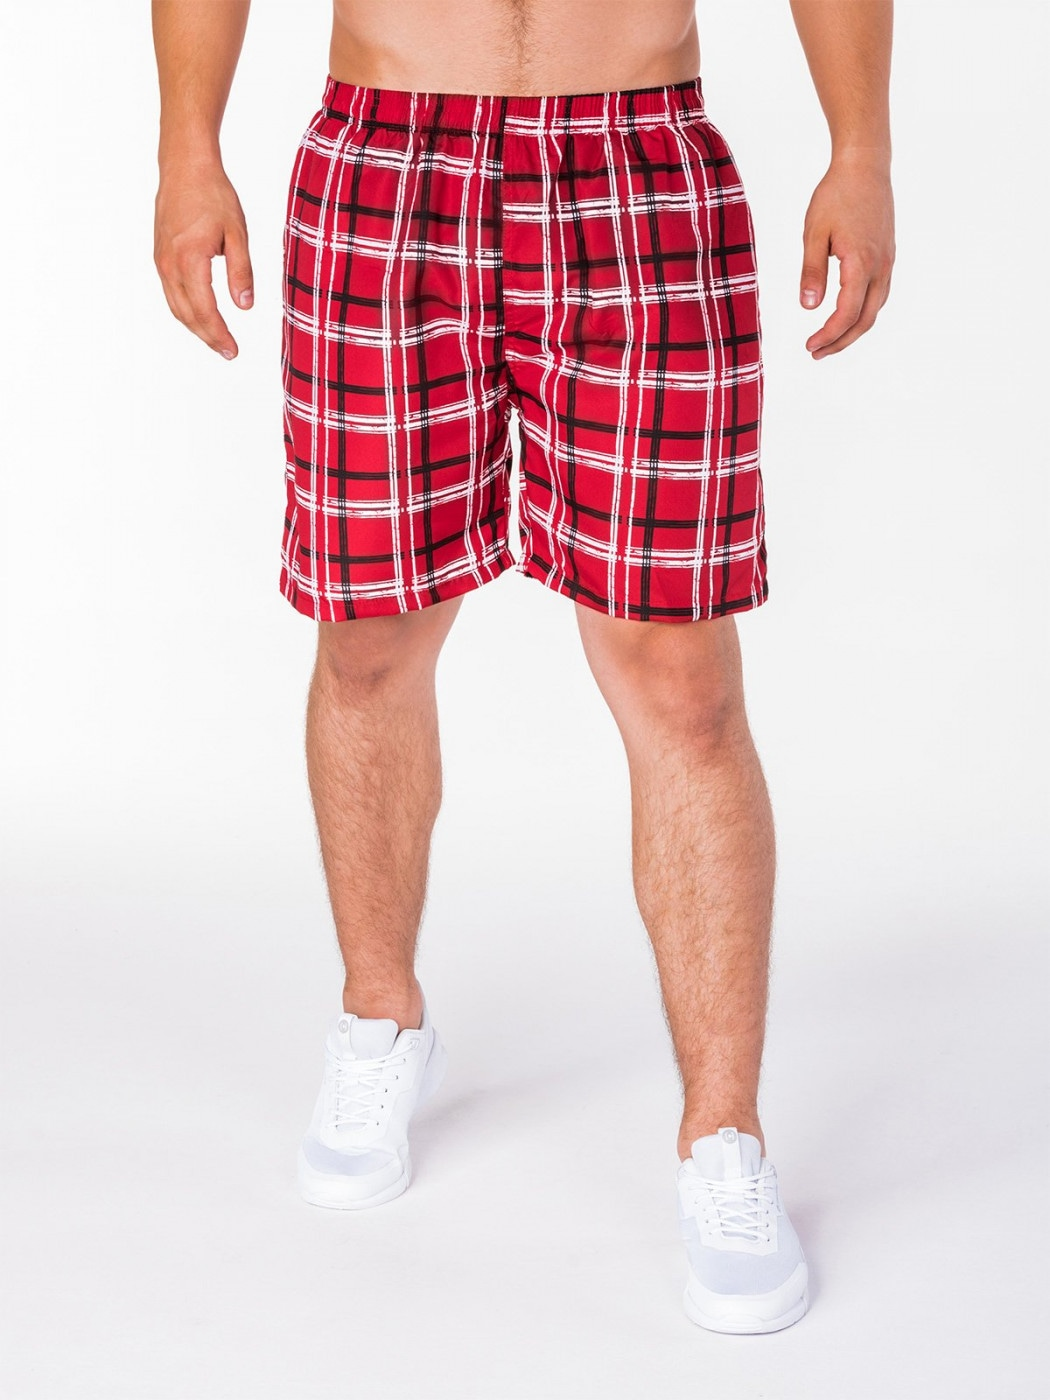 Men's shorts W092 - red